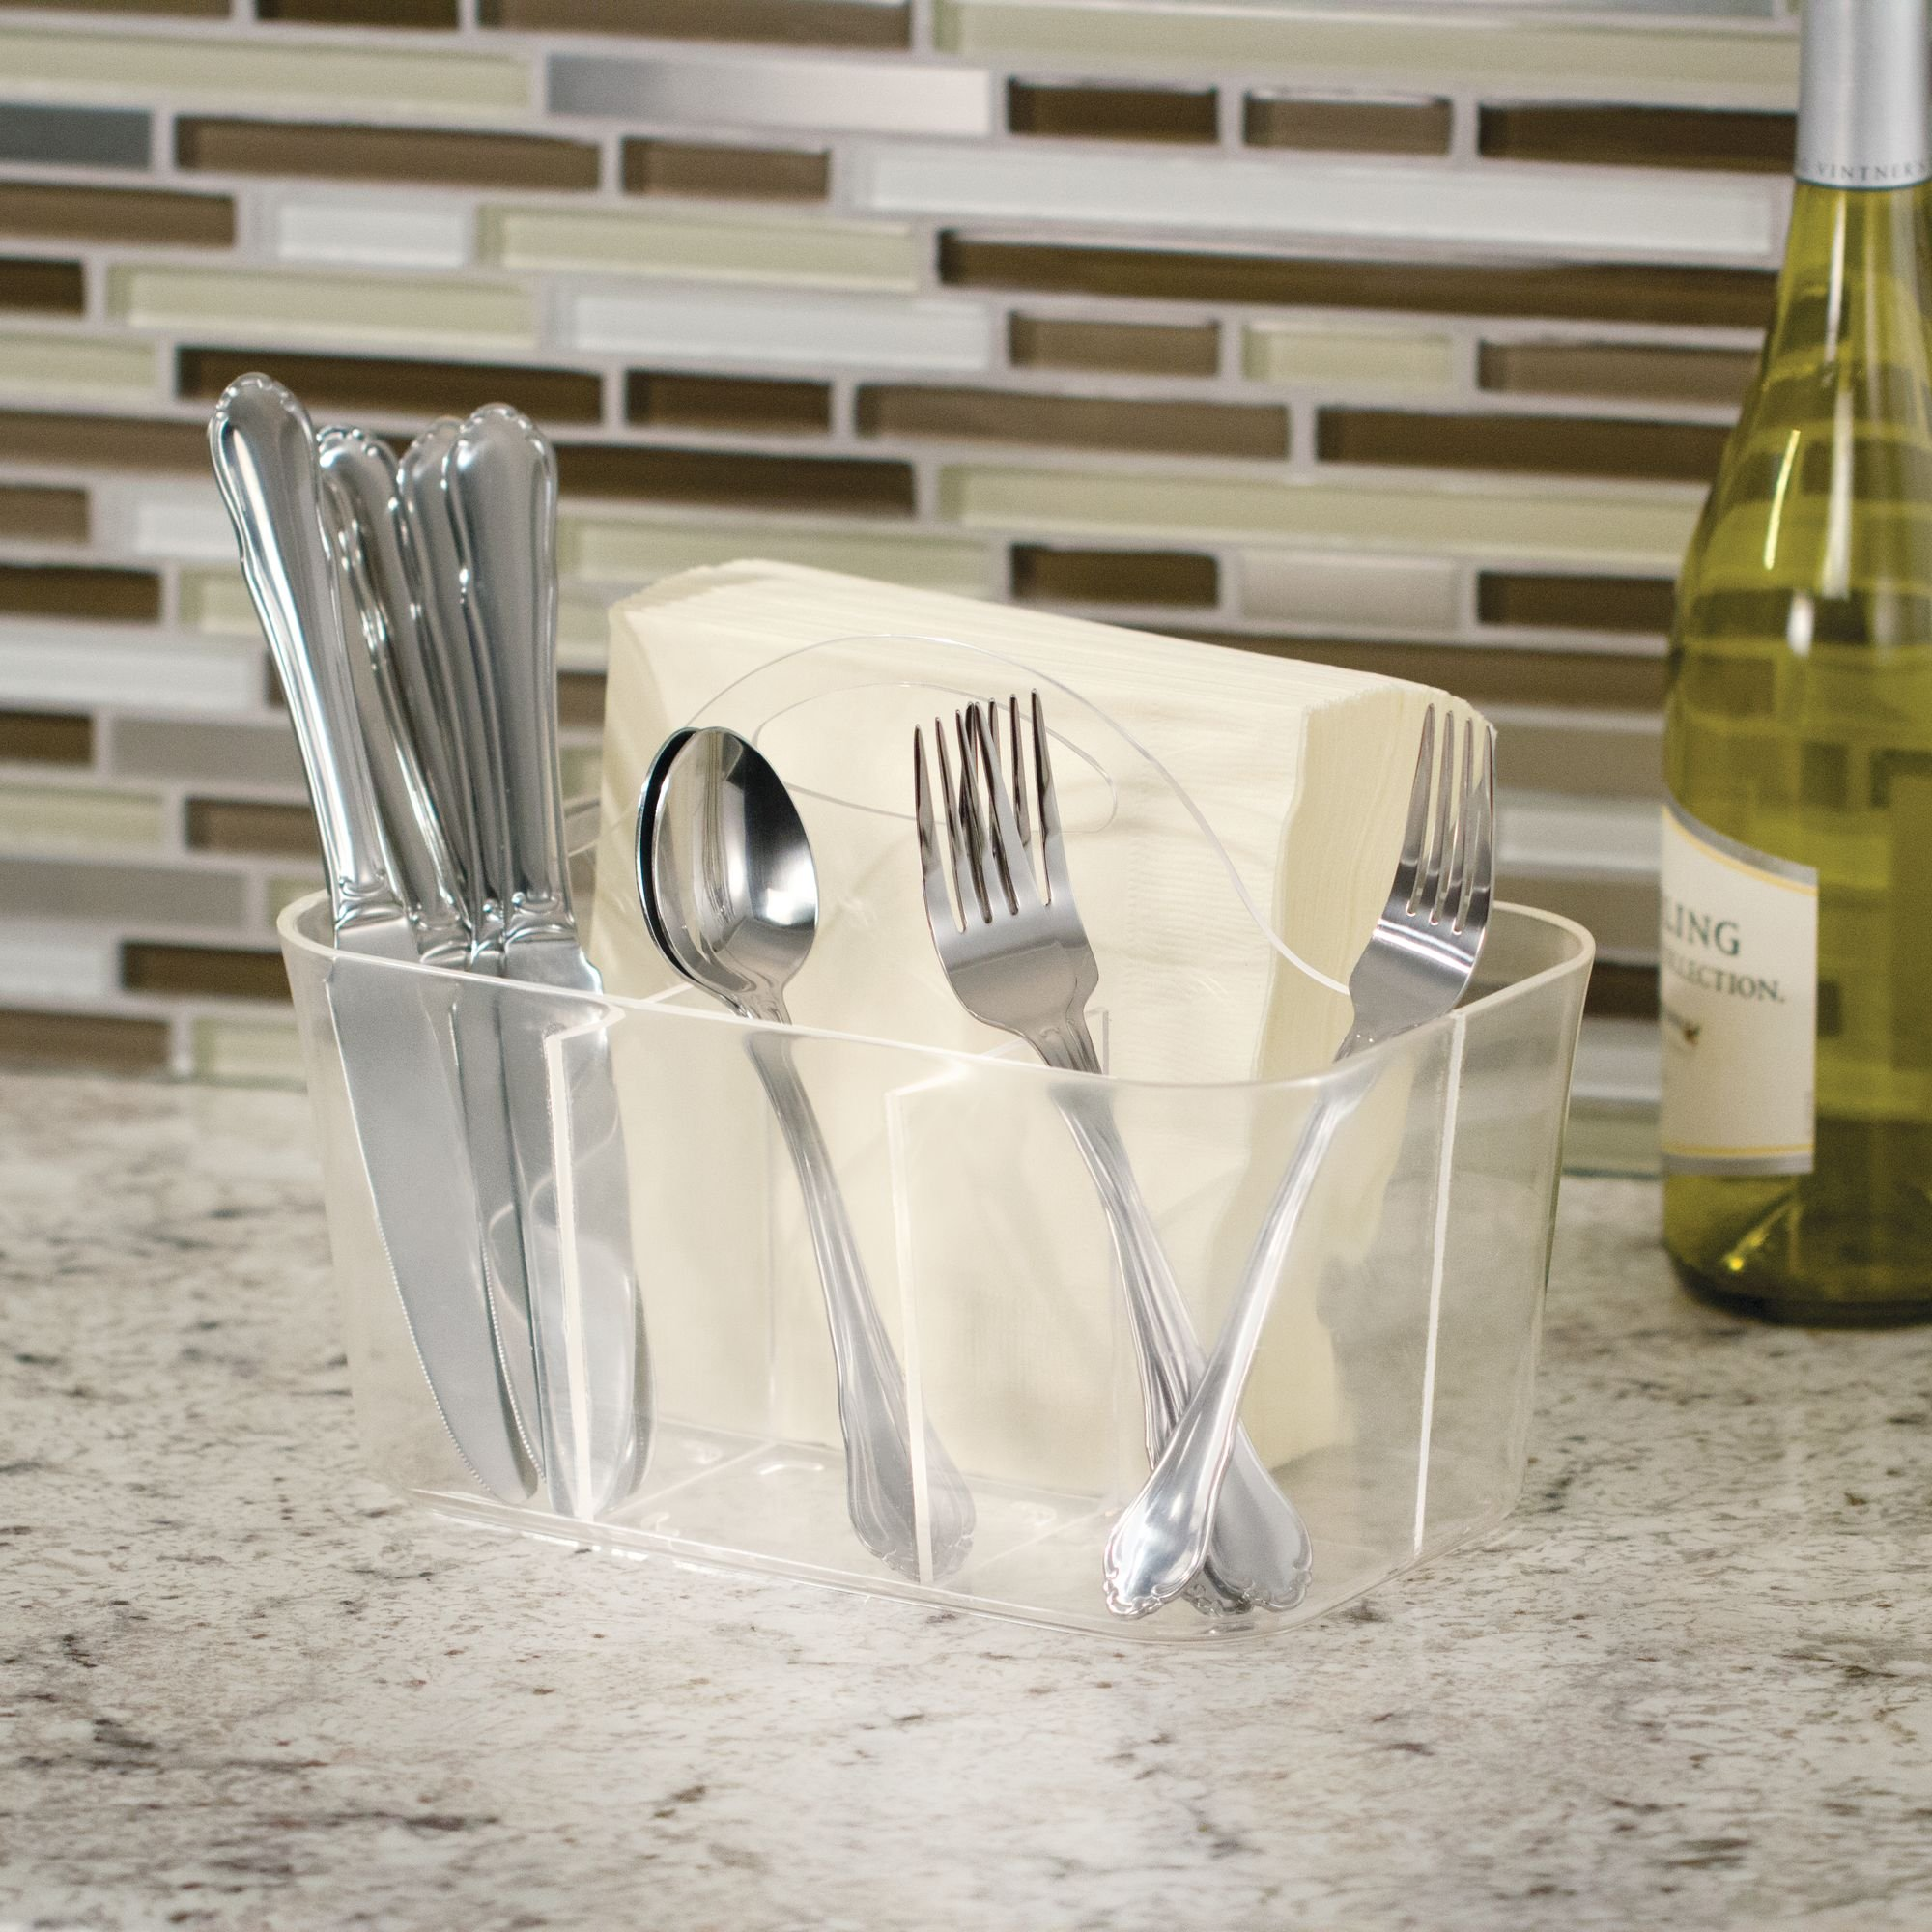 InterDesign Clarity Cutlery Flatware Caddy, Silverware, Utensil, and Napkin Holder - Clear by InterDesign (Image #4)